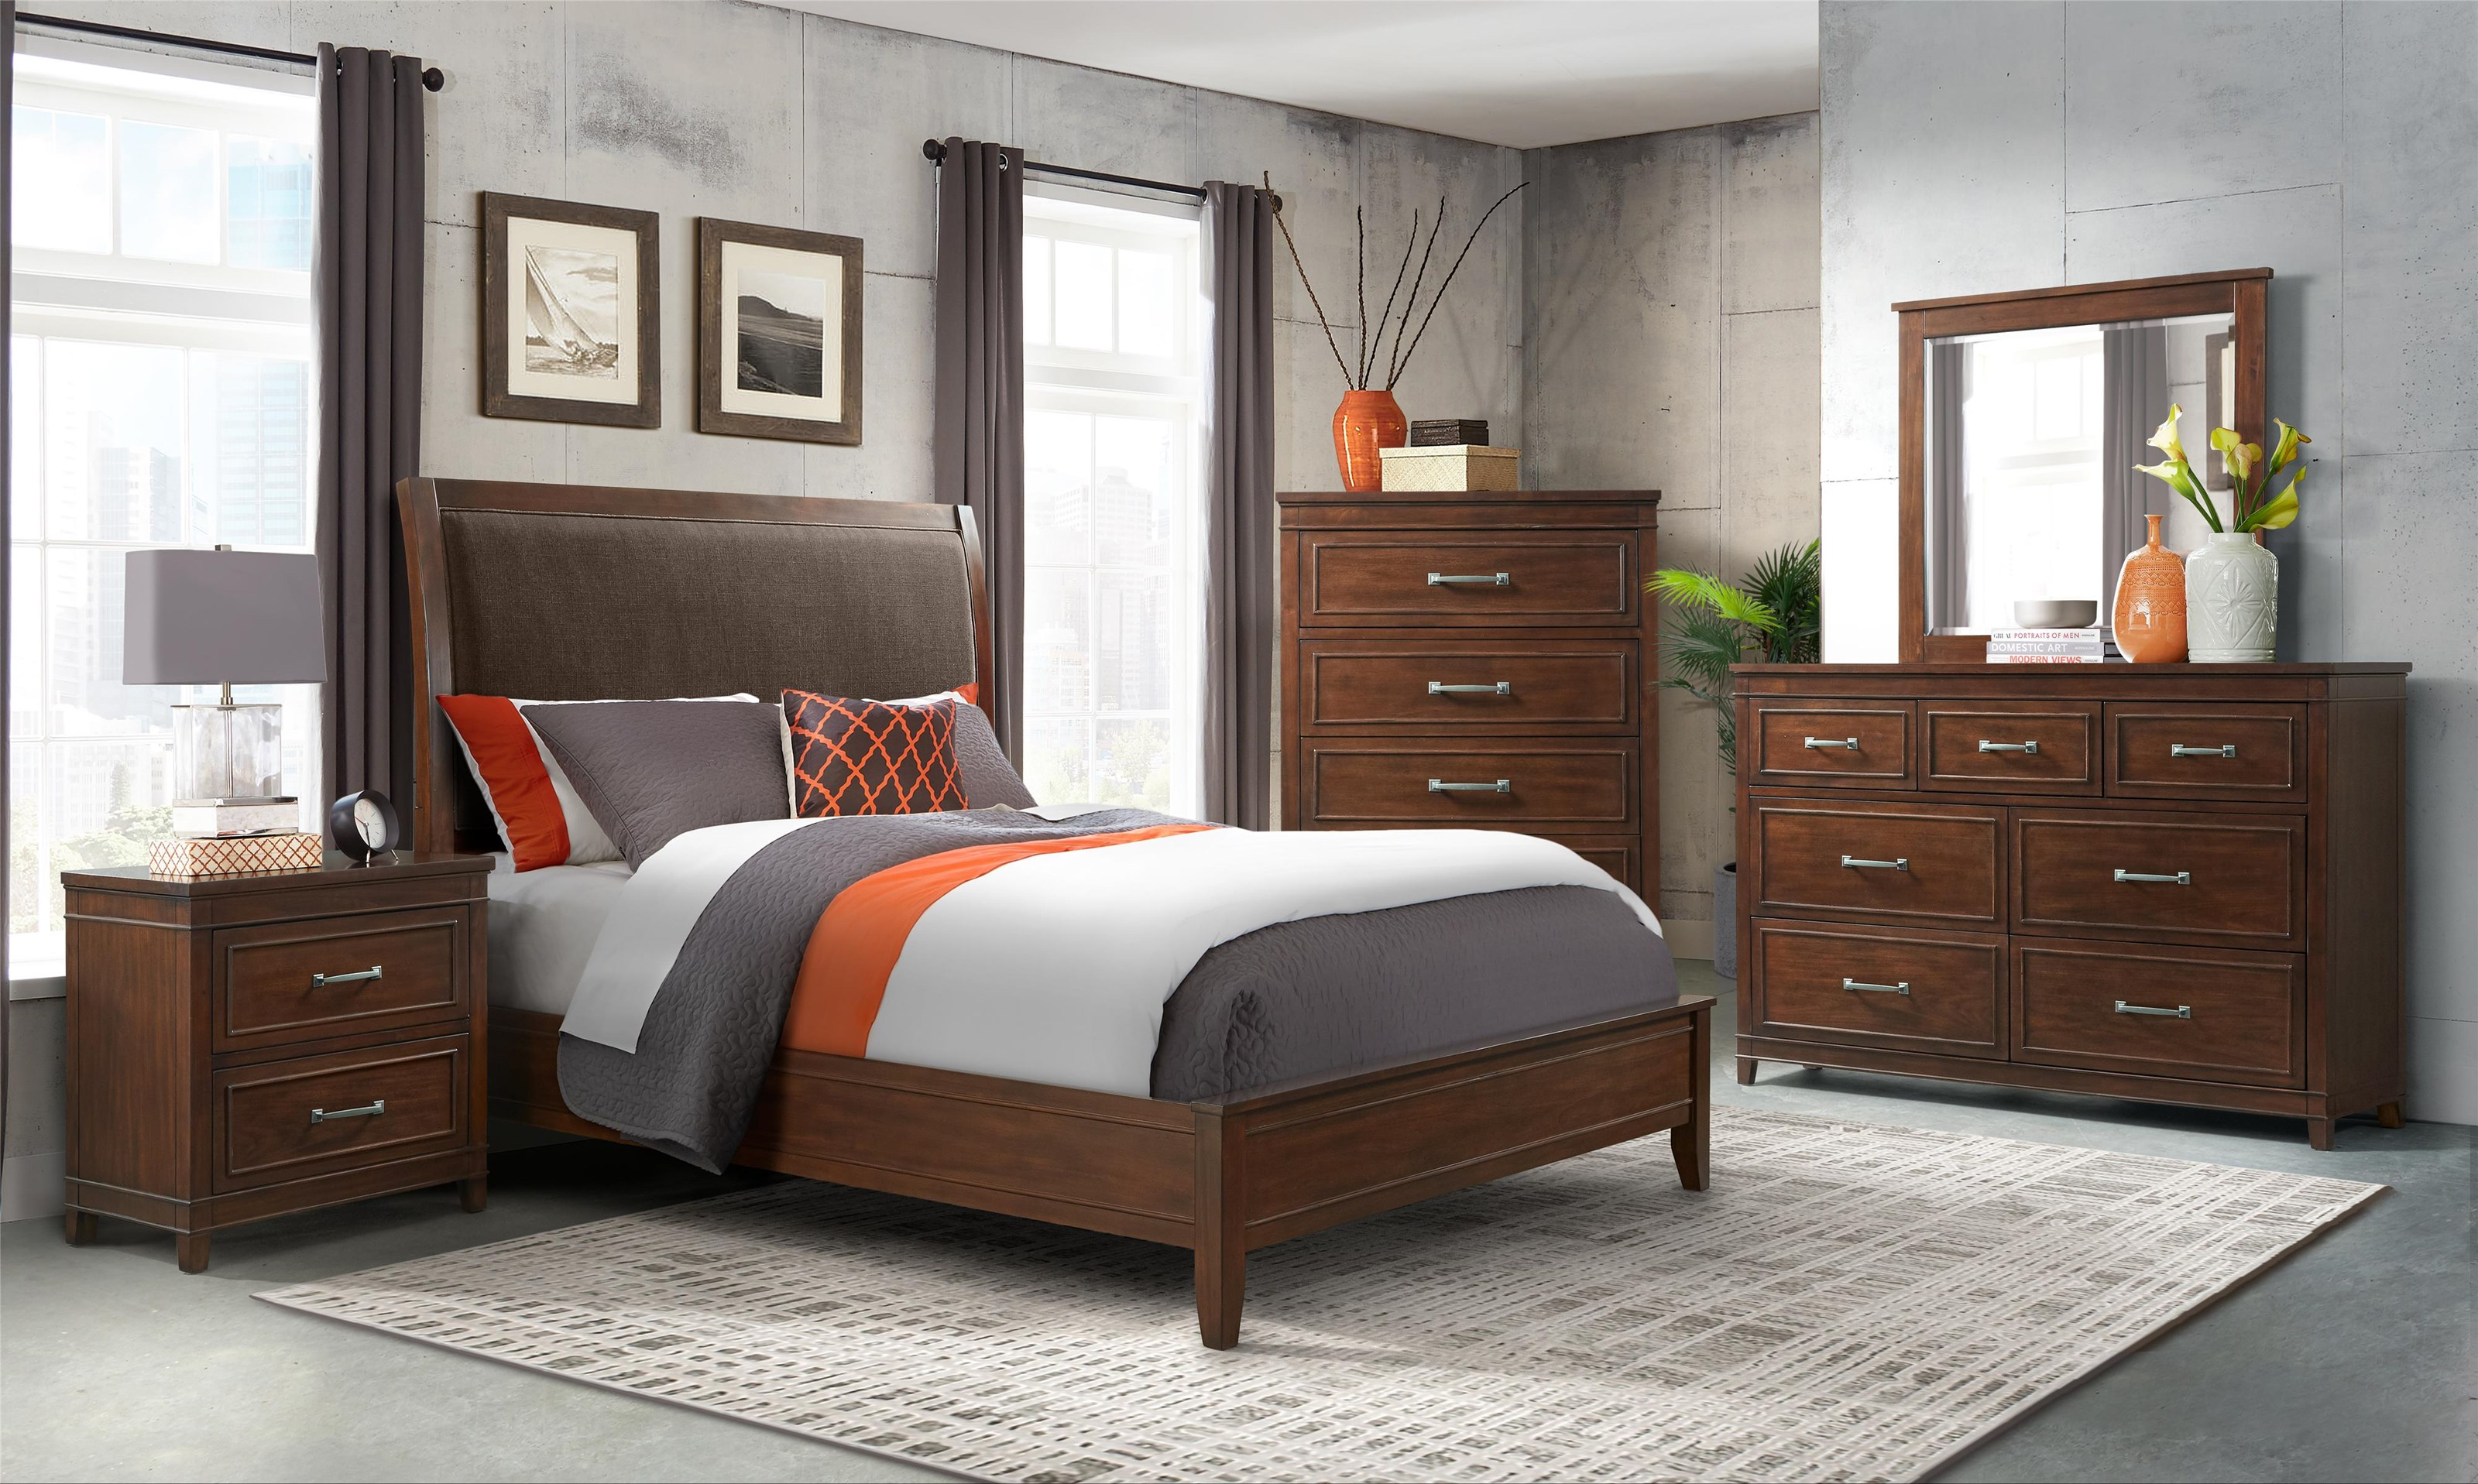 LaJolla King Size Bed by Martin Svensson Home at Darvin Furniture